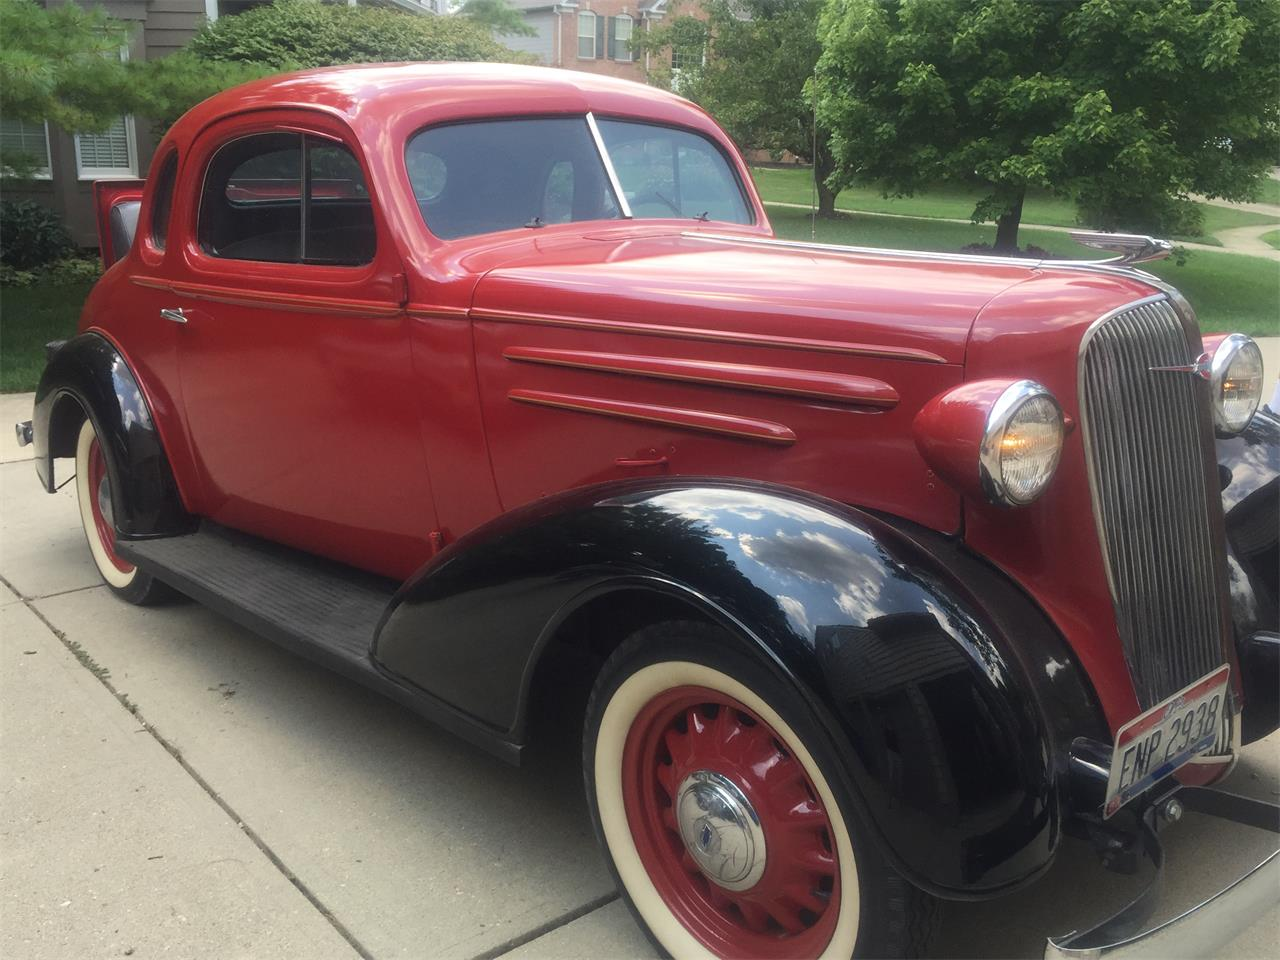 For Sale: 1936 Chevrolet Coupe in Dacula, Georgia